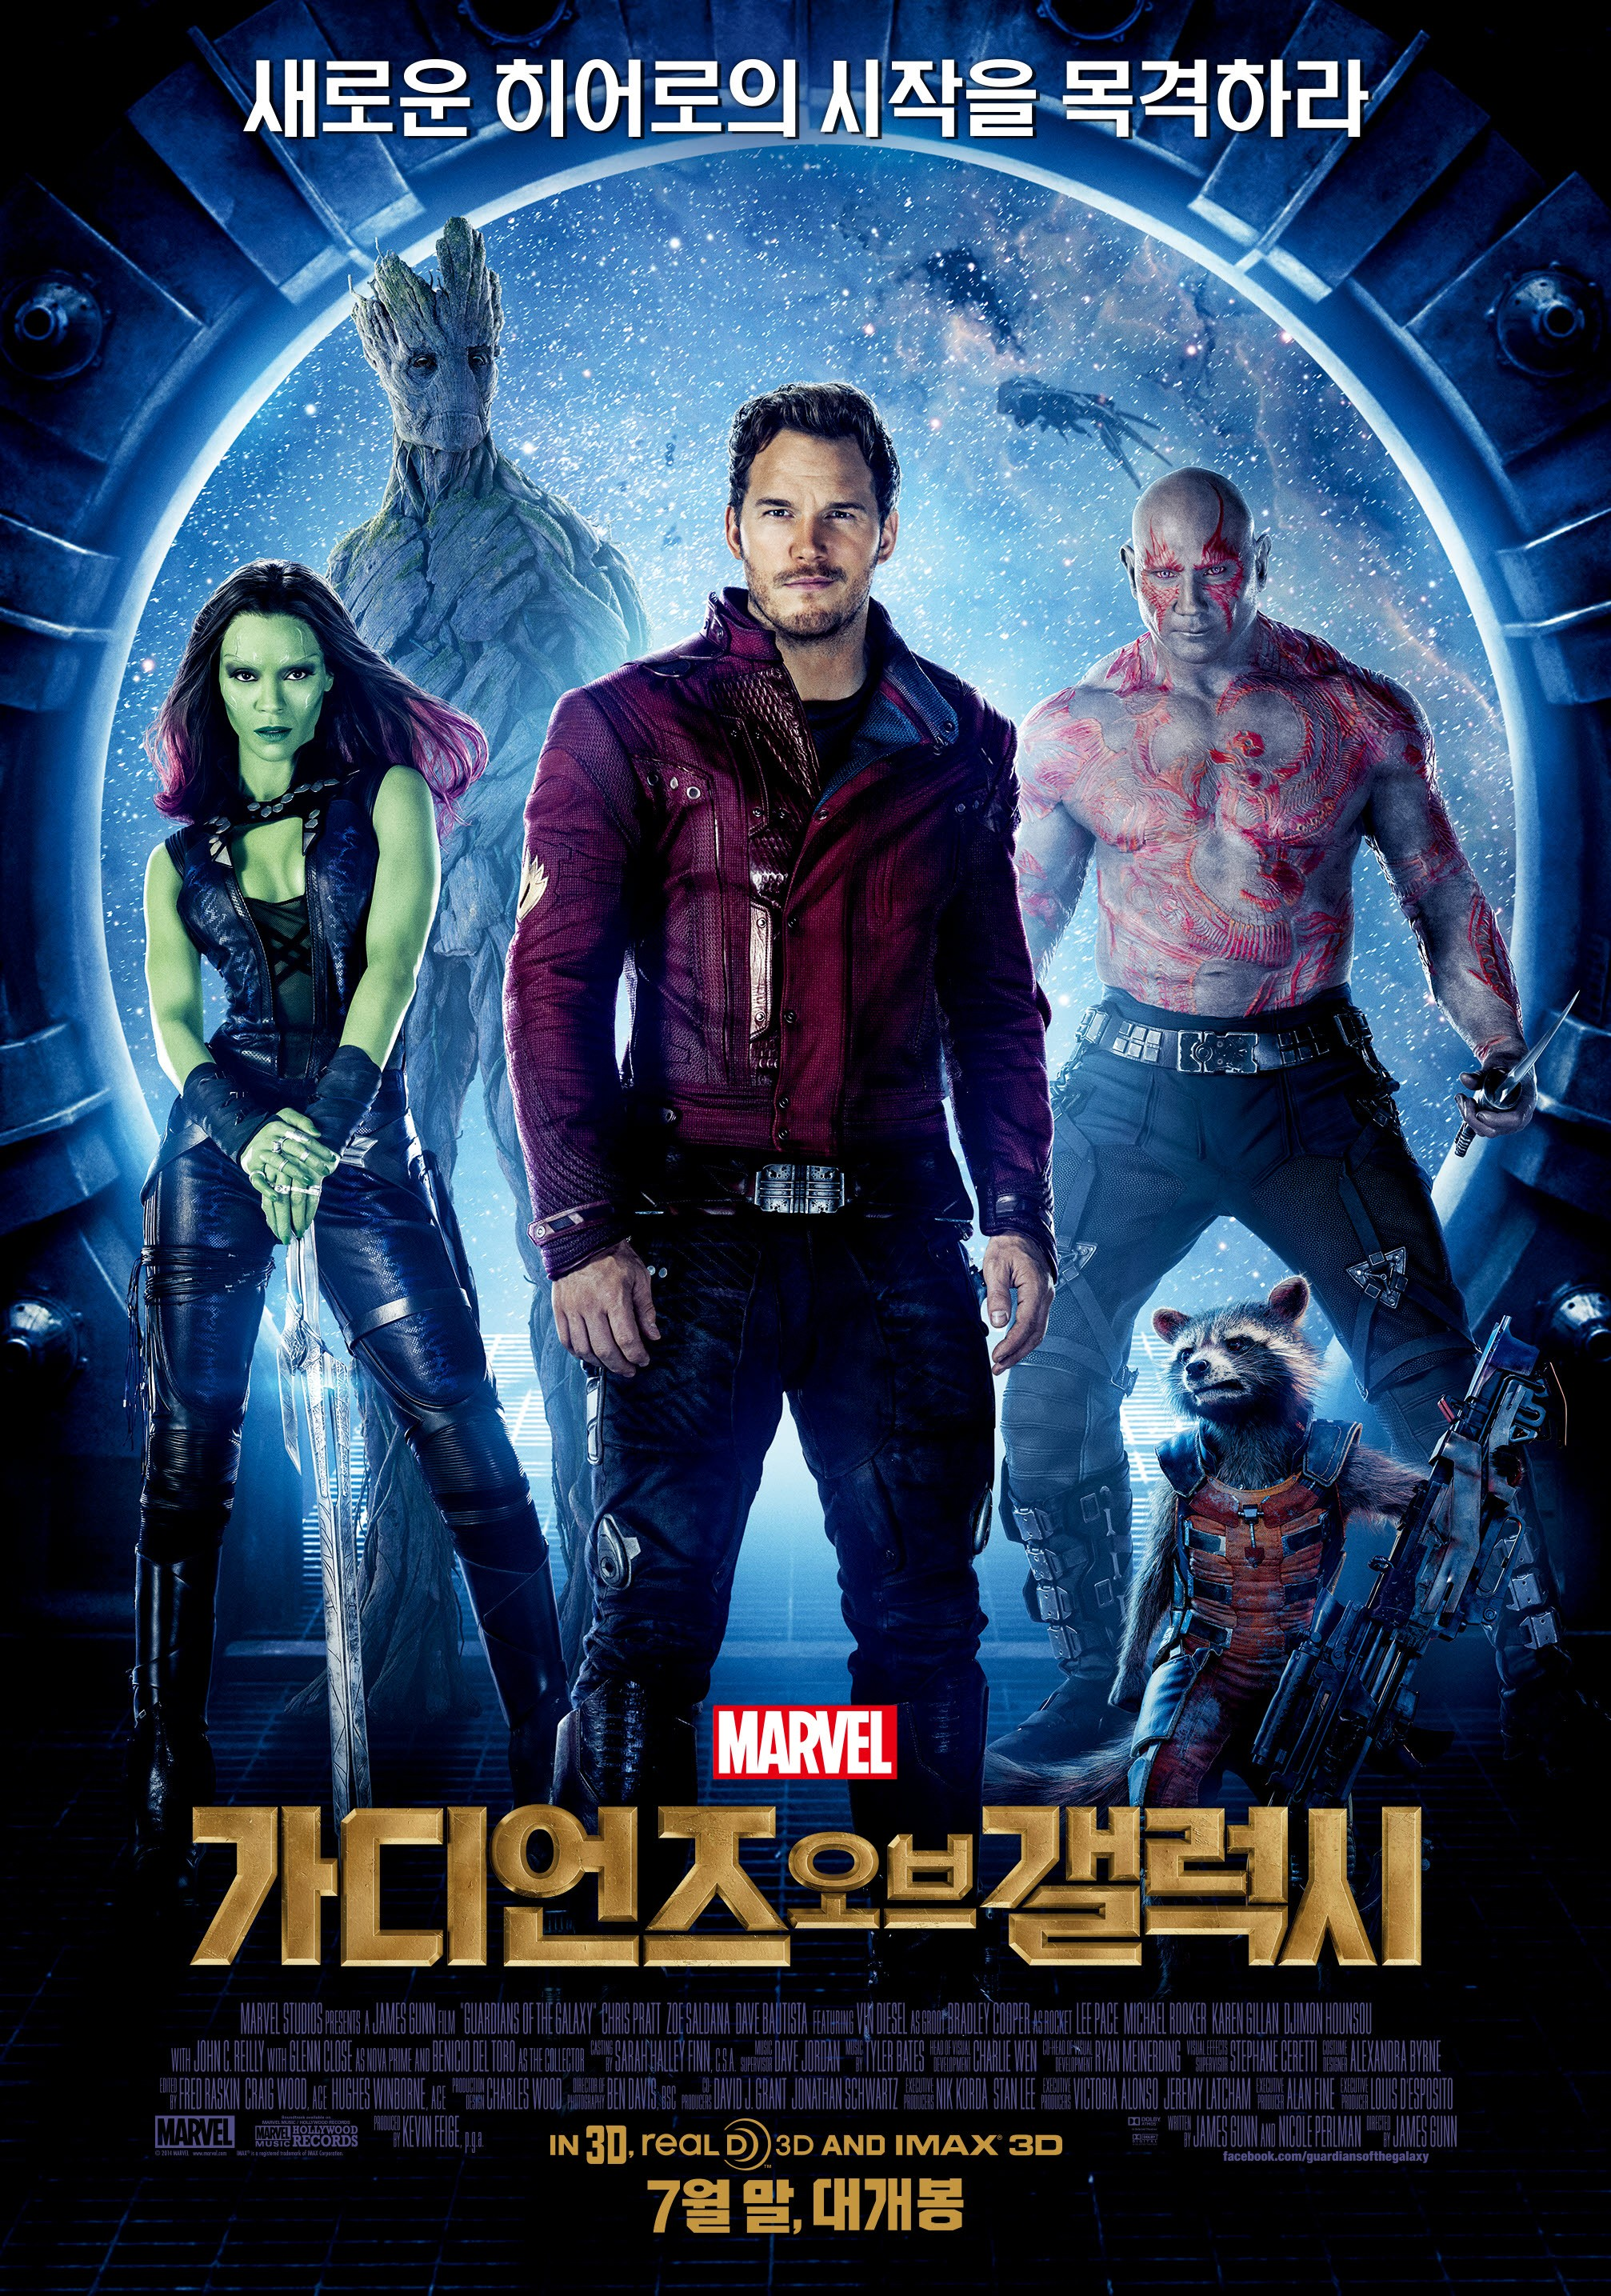 More character posters for guardians of the galaxy blackfilm com